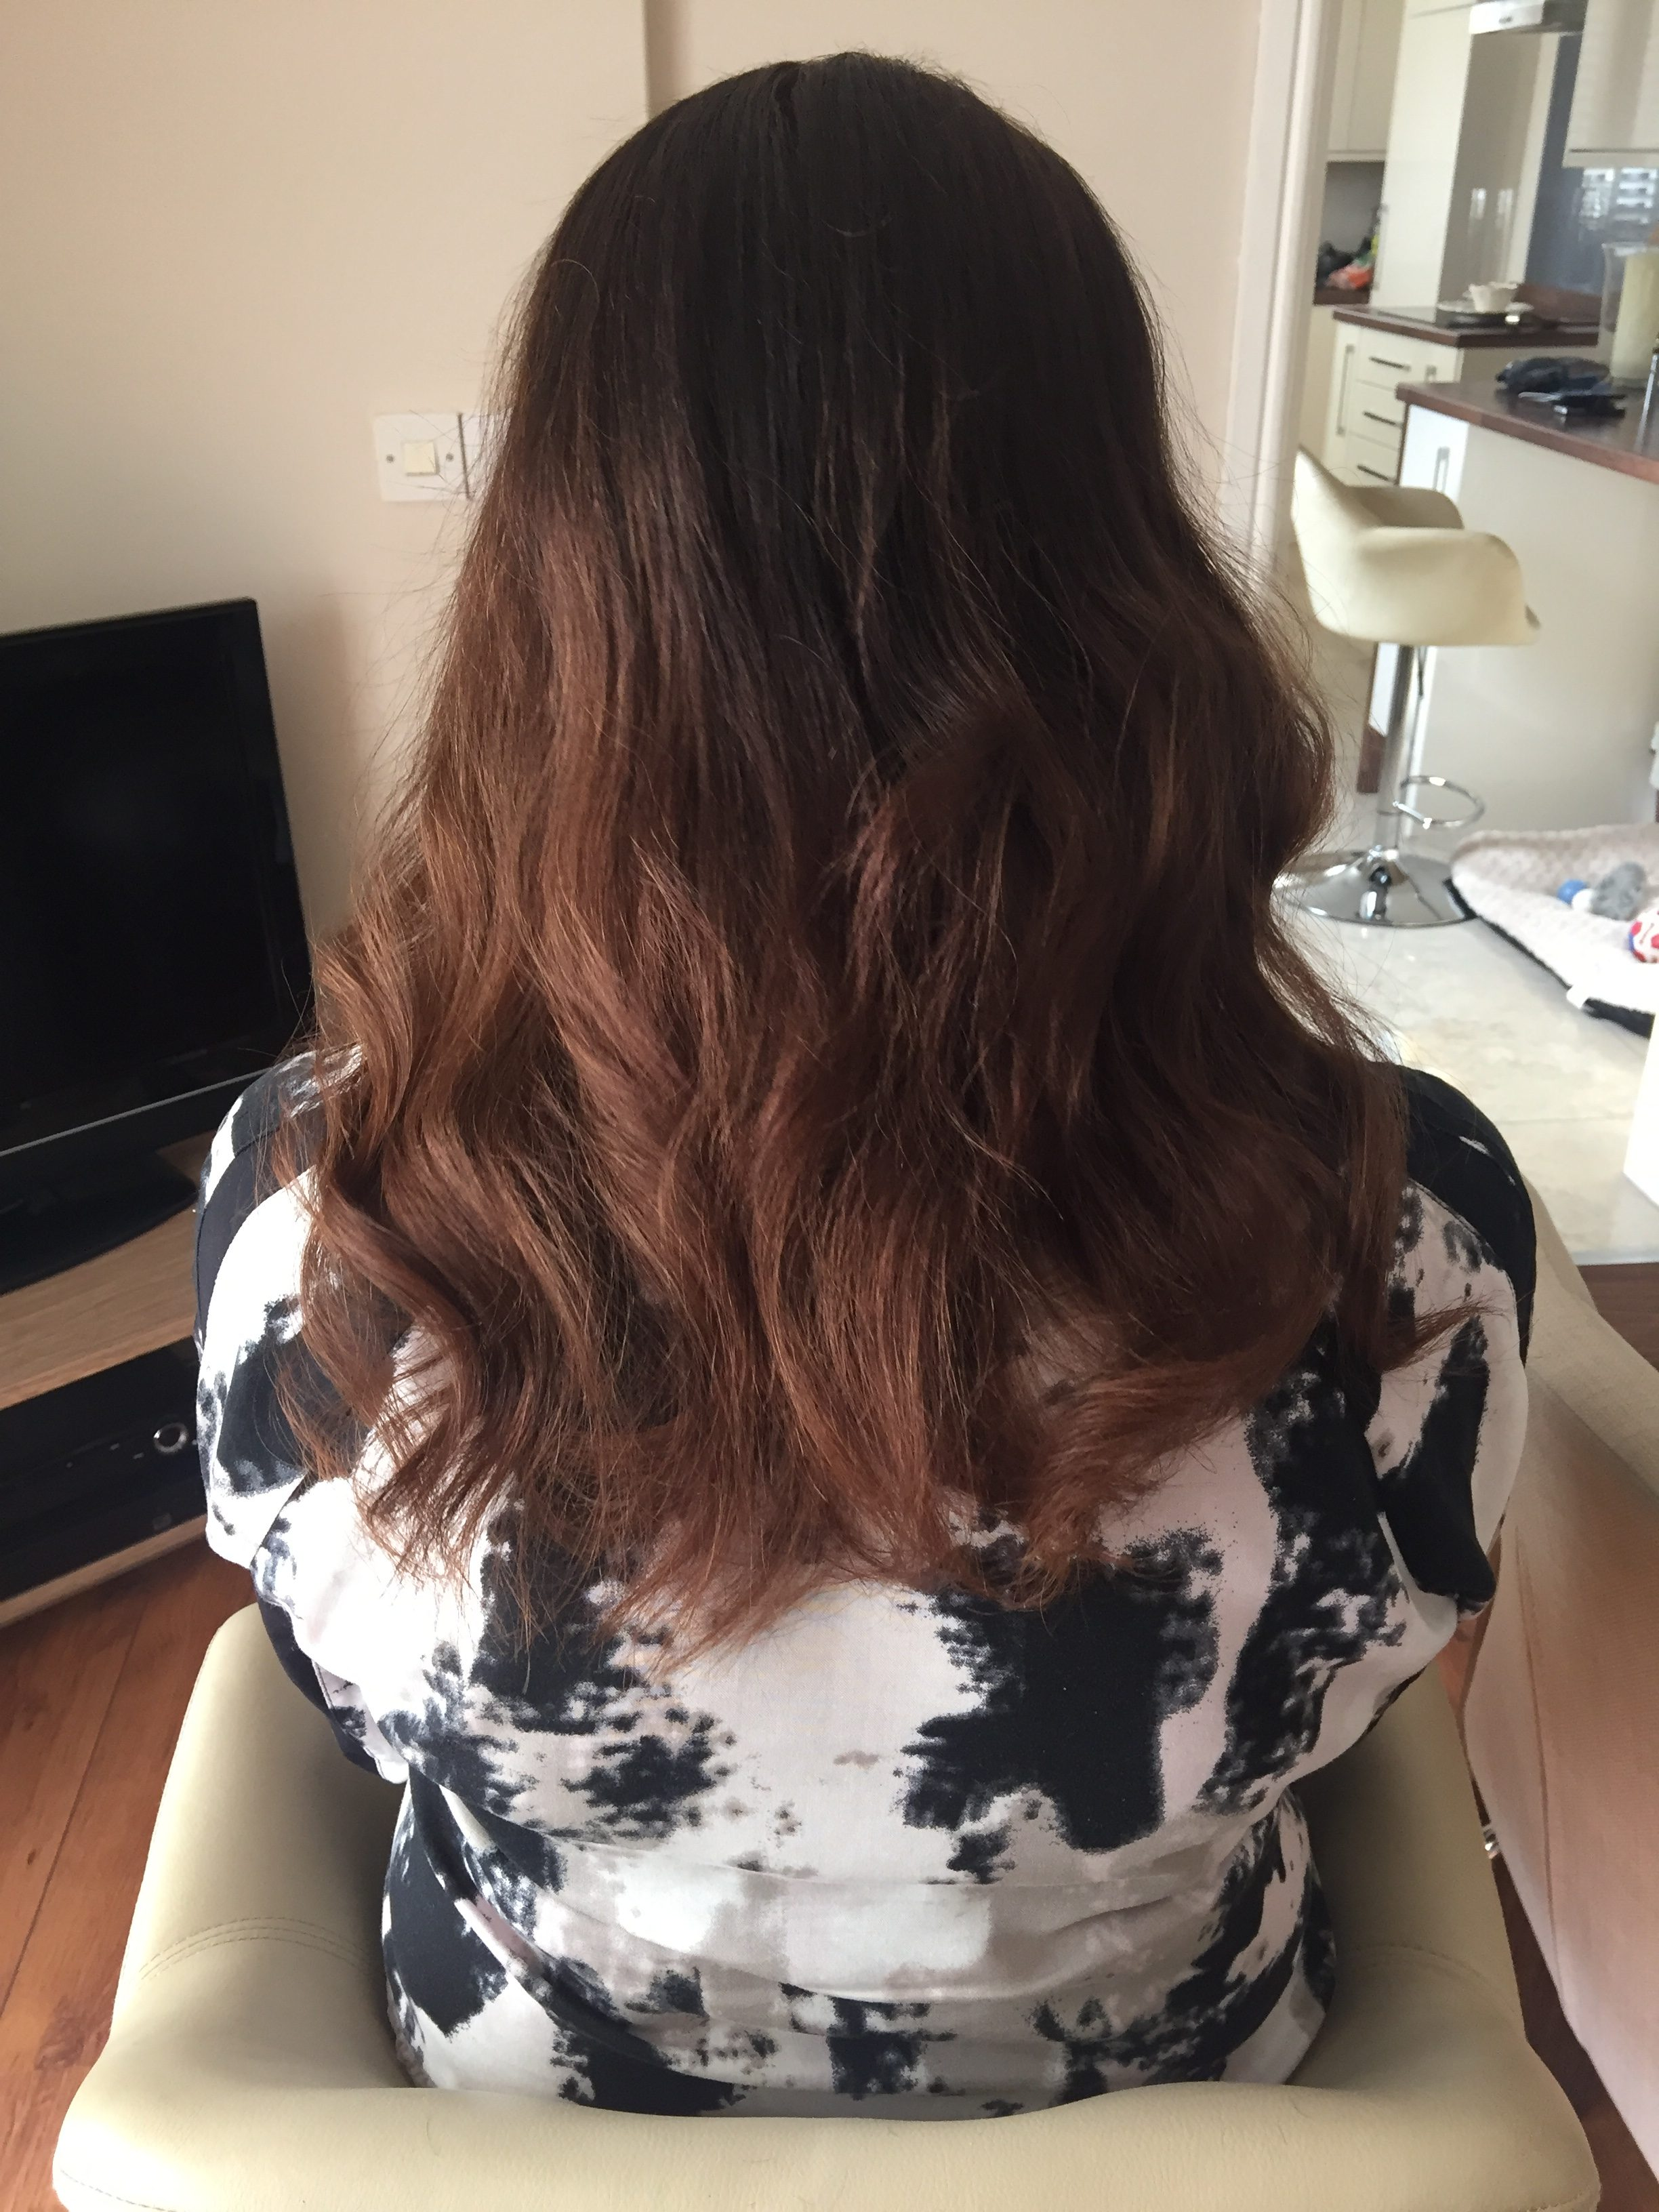 Hair extensions by charlotte moore makeup artist and hair stylist book in for your complimentary consultation where we can discuss requirements colours looks and all qa for your dream hair please see my contacts page pmusecretfo Gallery